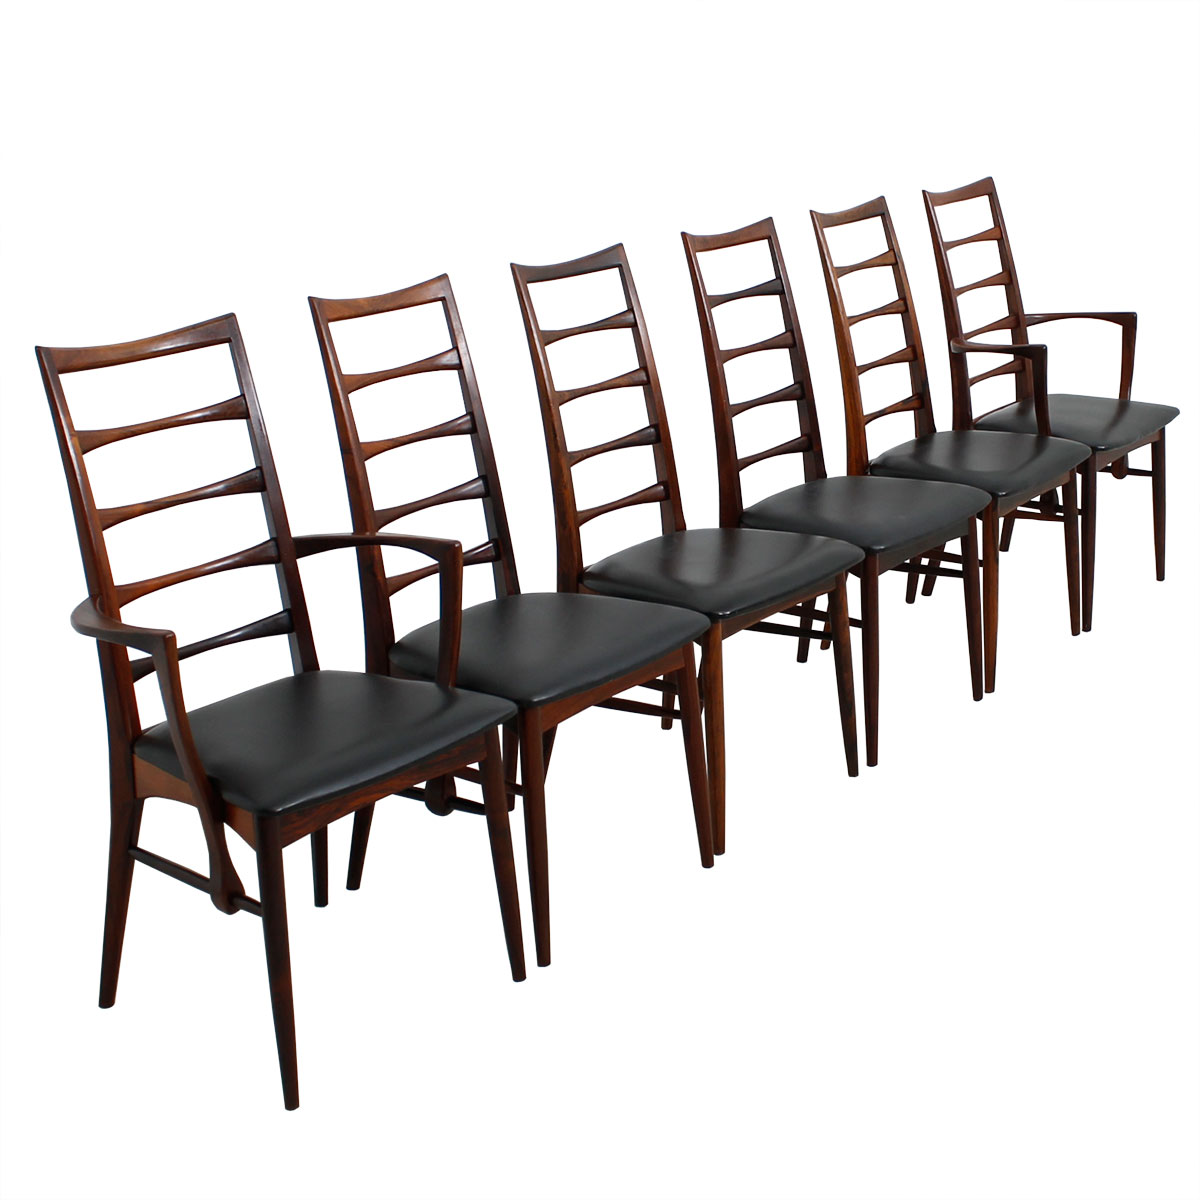 Set of 4 – 12+ Koefoeds Hornslet Danish Rosewood Dining Chairs